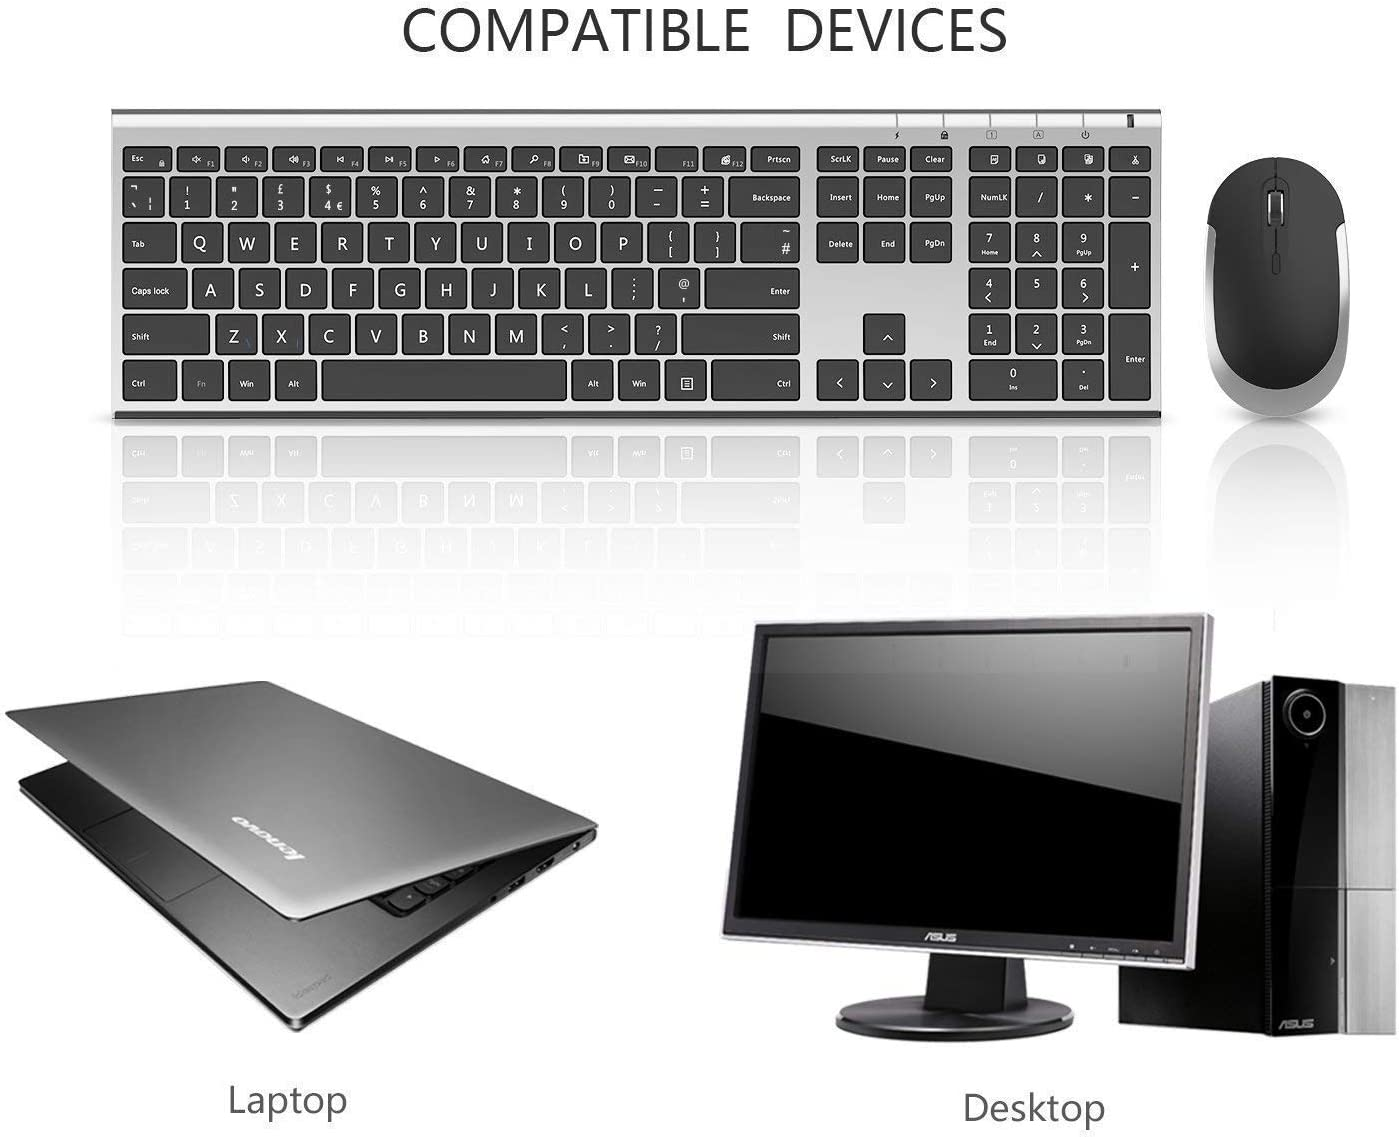 Jelly Comb Wireless Keyboard and Mouse Combo 2.4G Wireless Rechargeable Keyboard QWERTY UK Layout and Mice with USB Receiver for PC//Laptop//Computer White and Silver